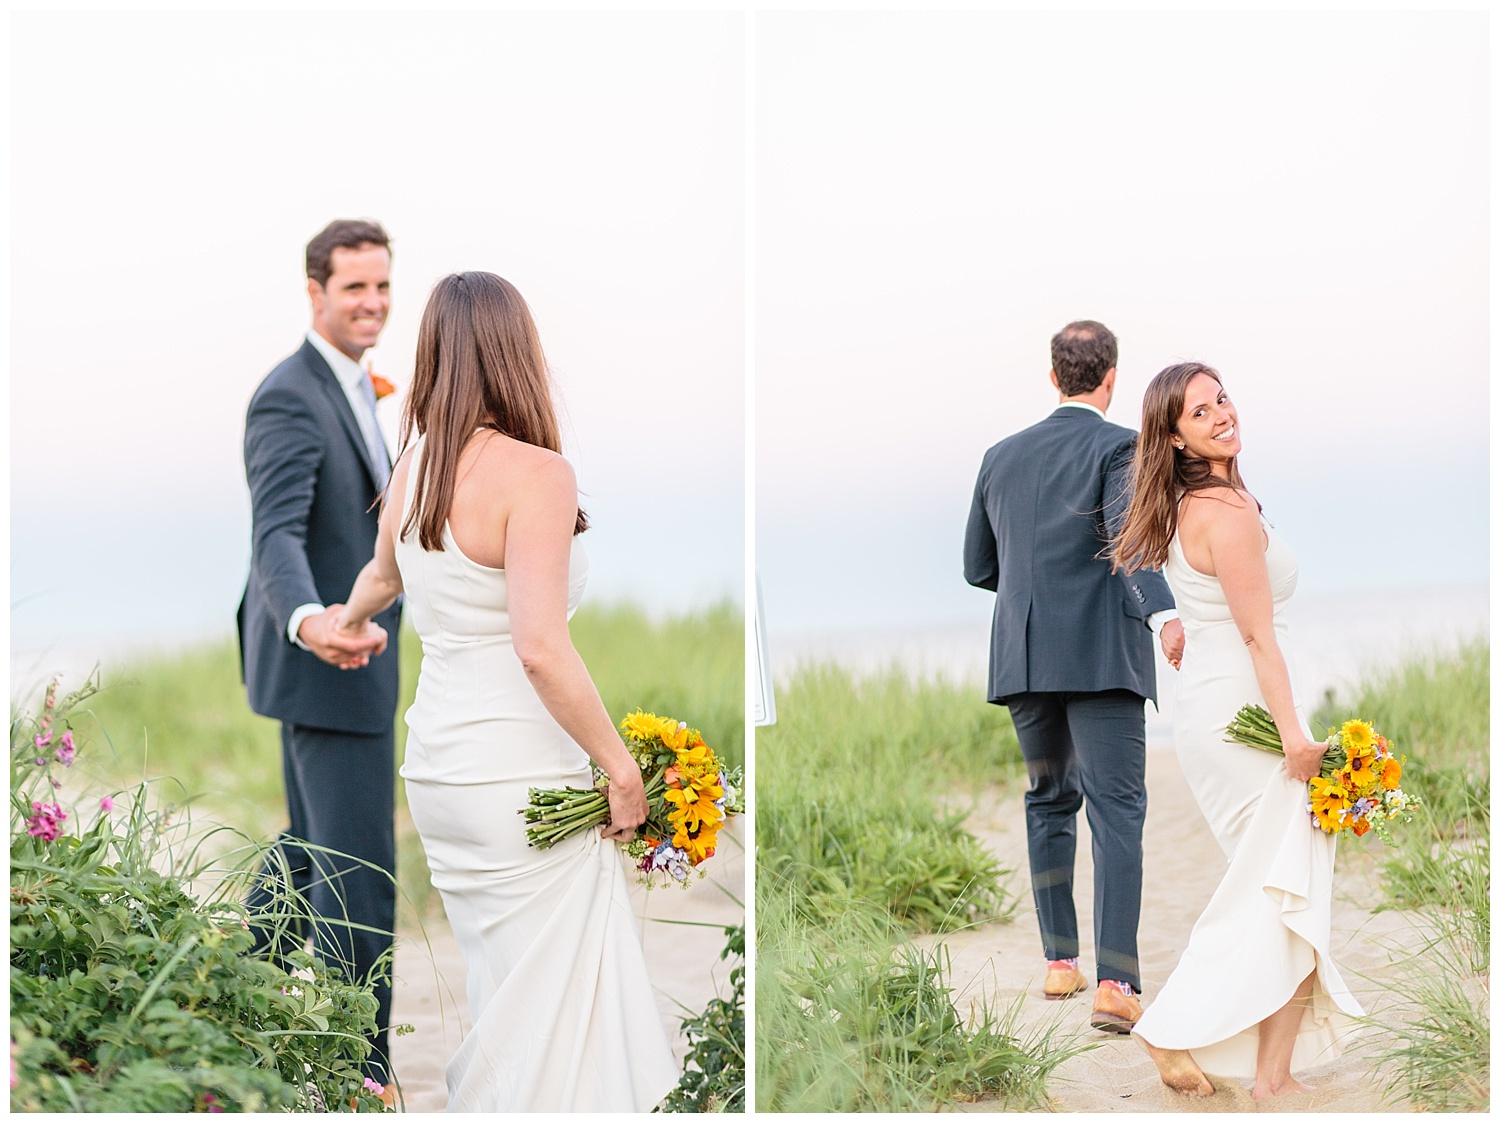 emily-belson-photography-nantucket-elopement-46.jpg